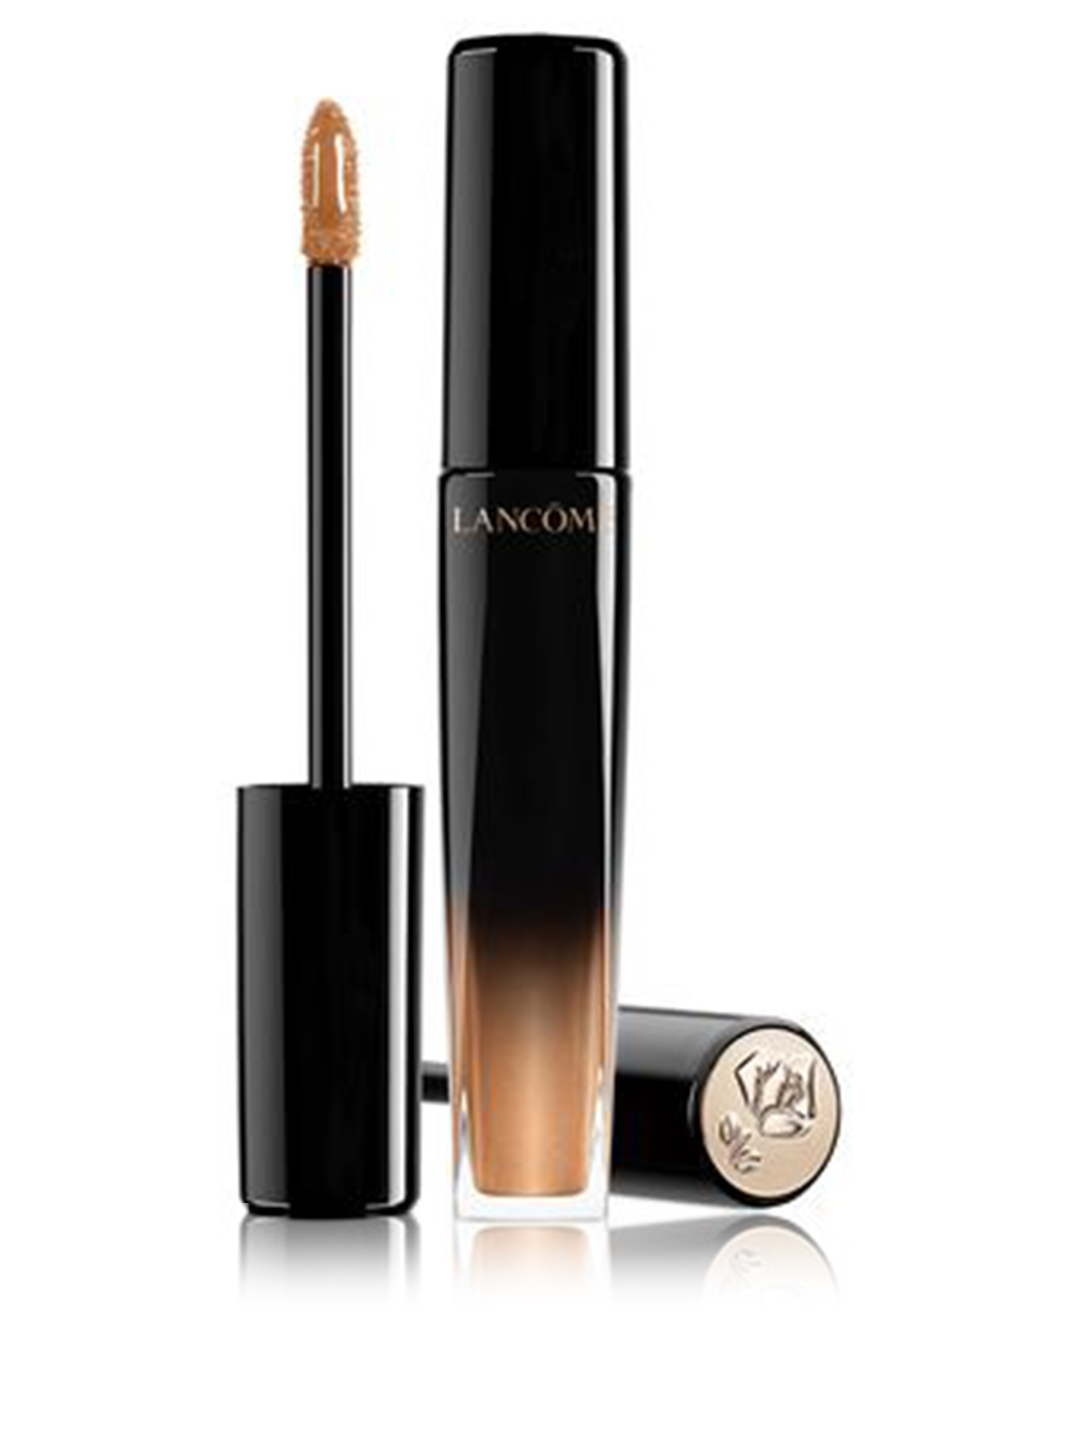 LANCÔME L'Absolu Lacquer Gloss Beauty Metallic